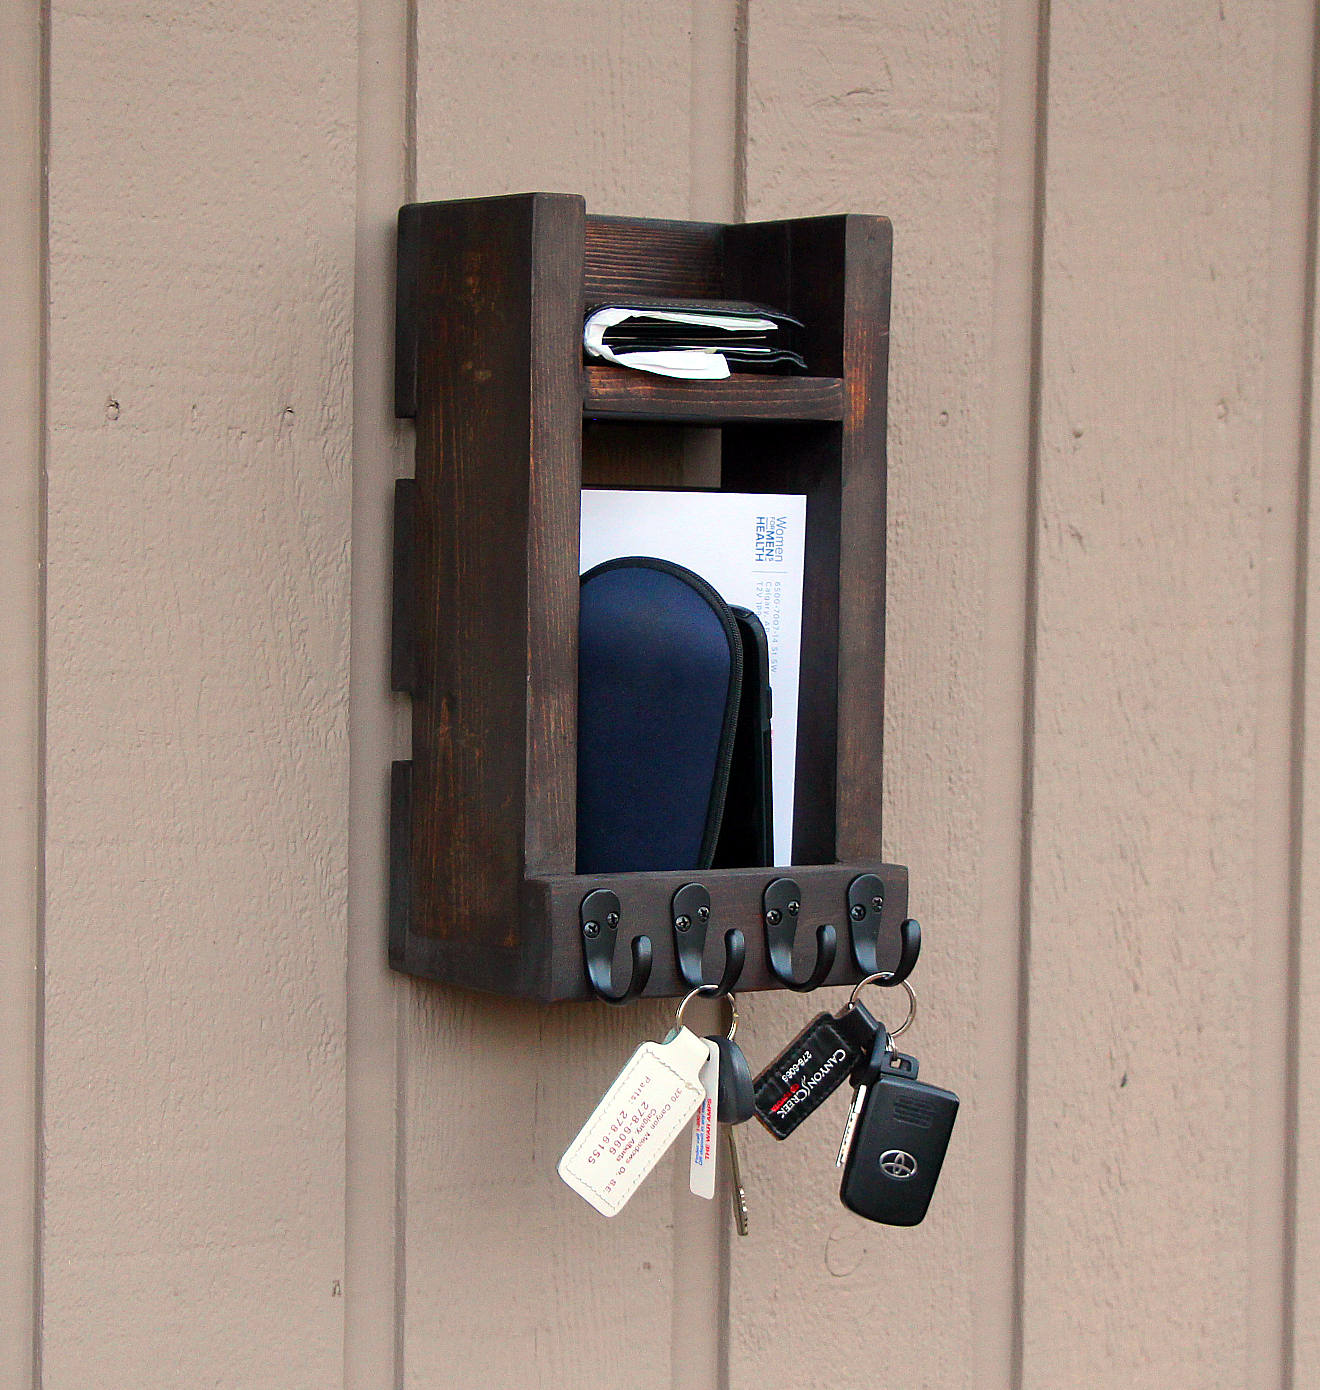 Wood Key Holder For Wall Buy Entryway Key Holder For Wall Up To 20 Key Hooks Mail